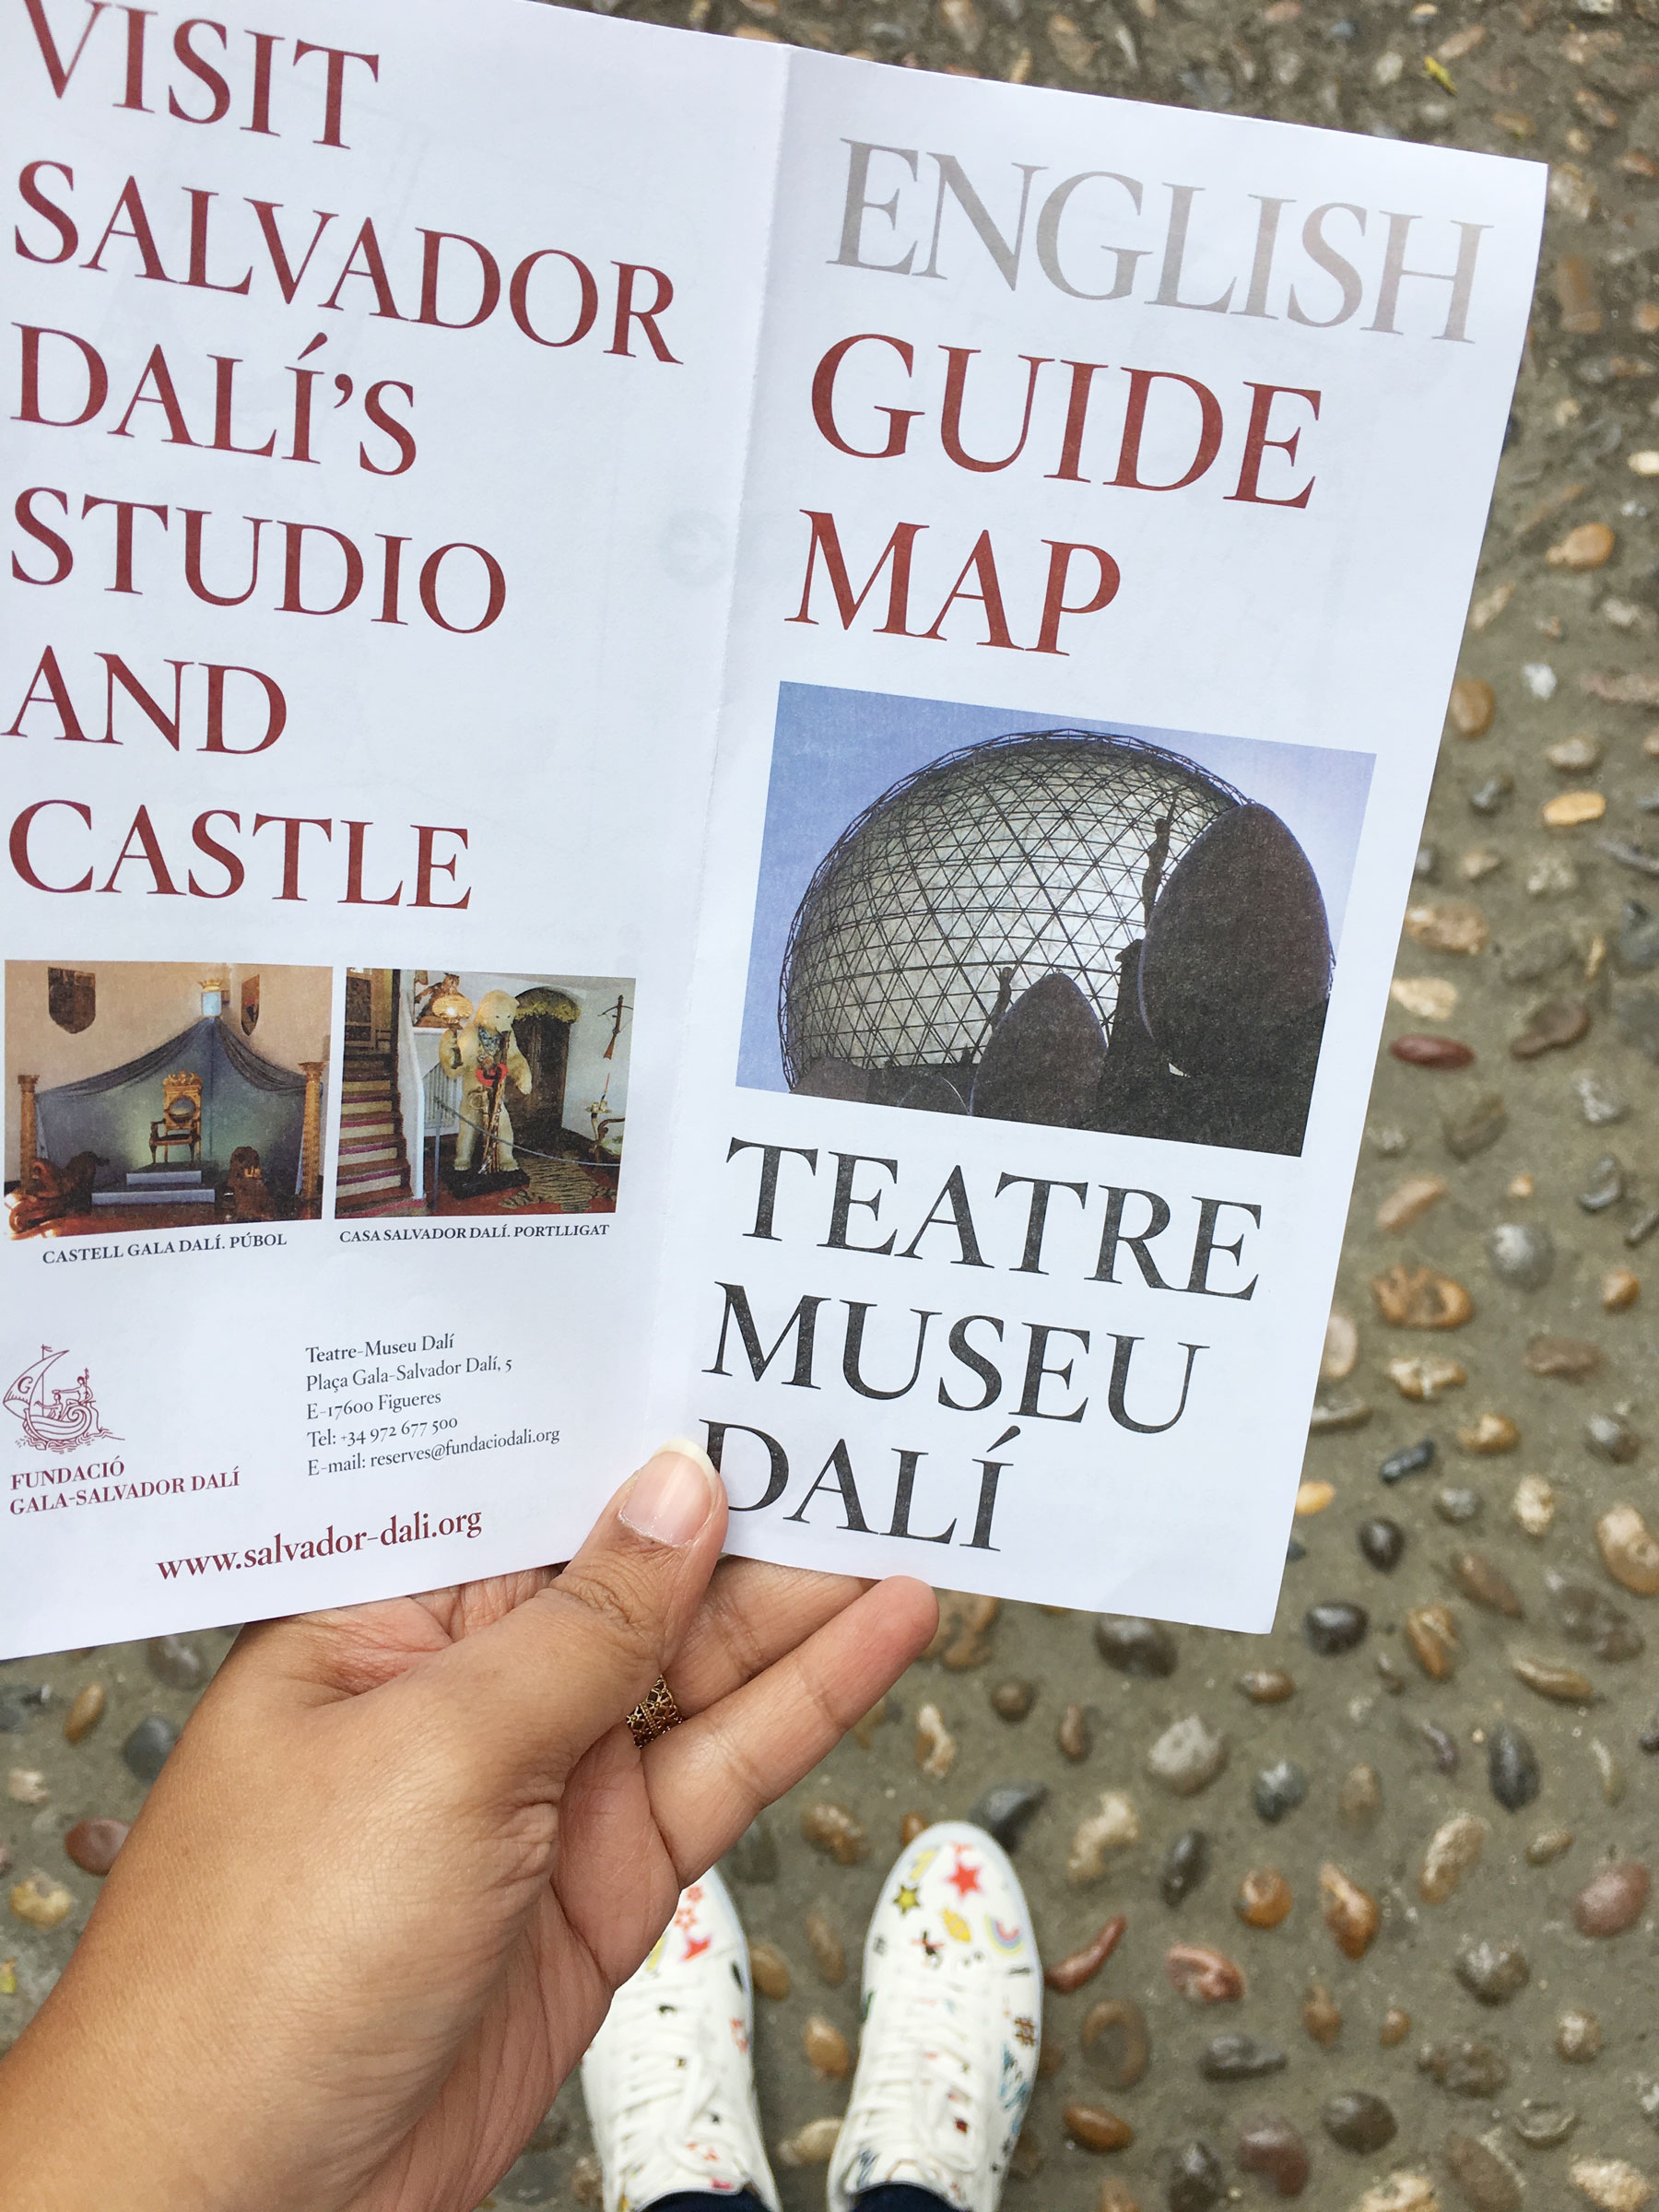 Day trip from Barcelona - Dali museum in Figueres. #daytripfrombarcelona #dalimuseum #figueres